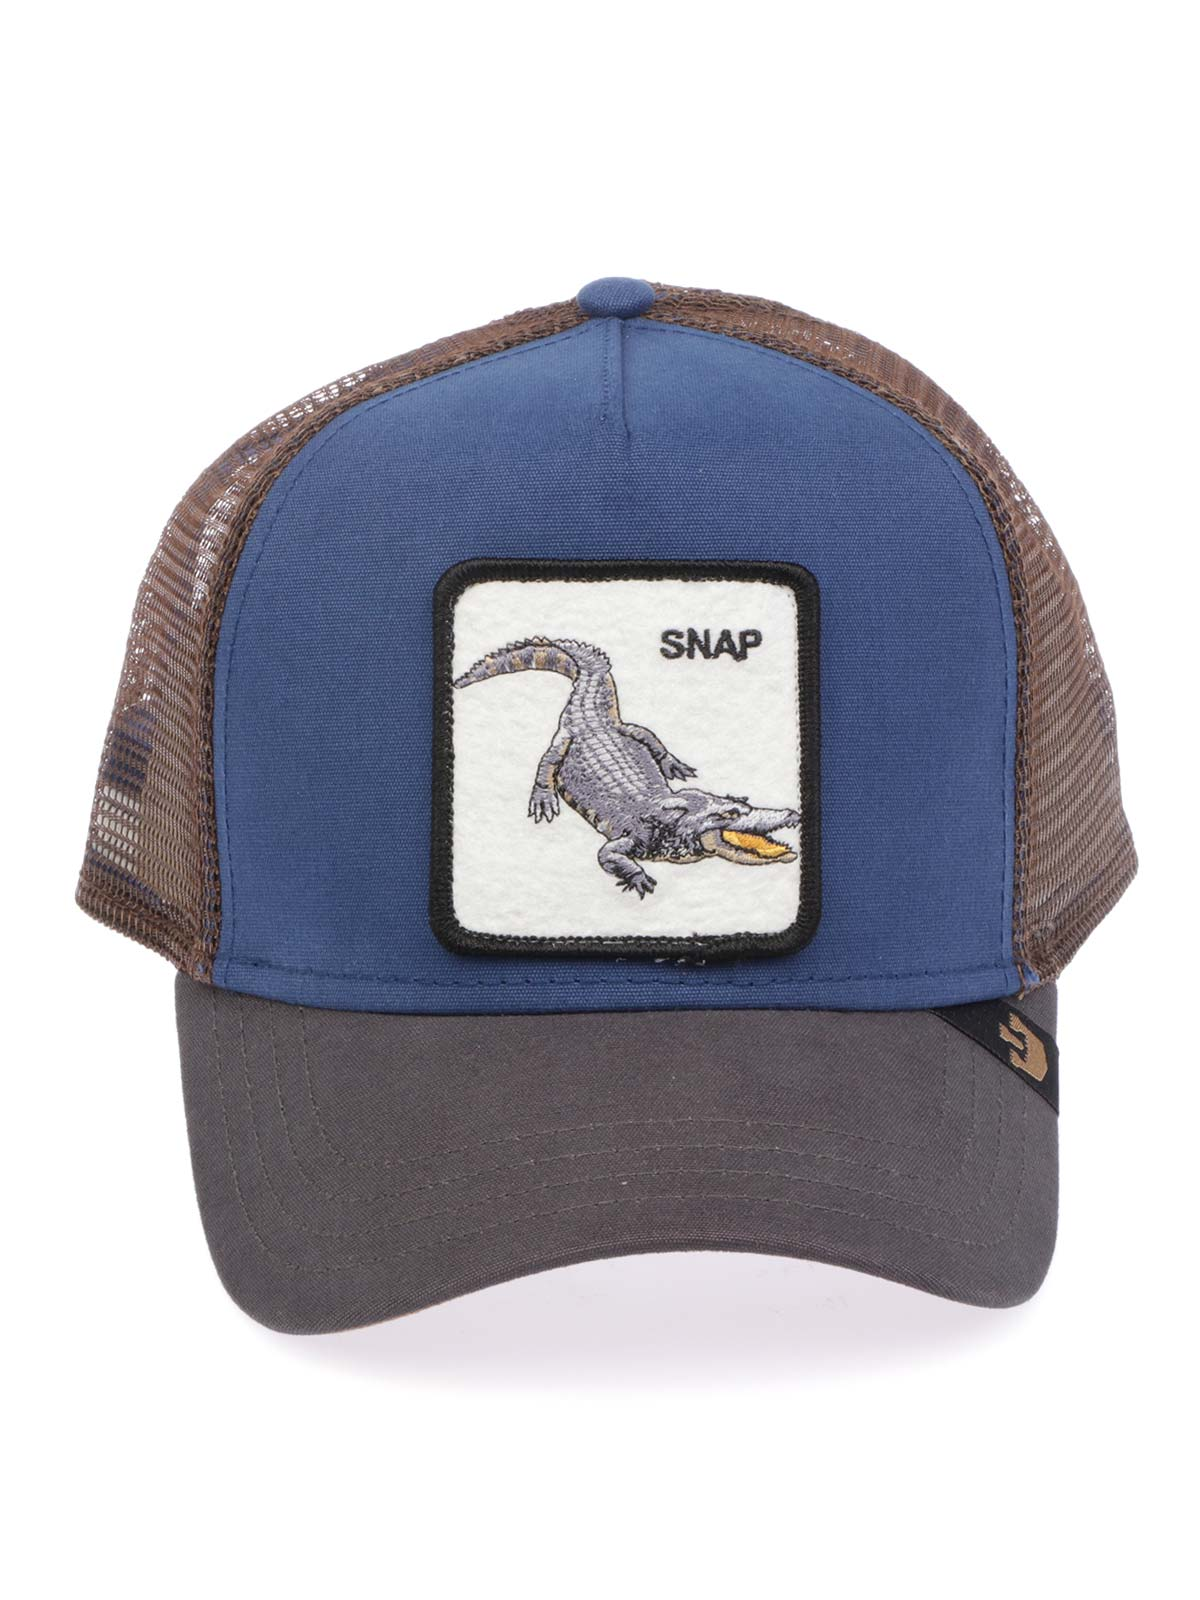 3ad5d14a6505e7 GOORIN BROS Men's Snap Trucker Cap Blue | ANIMAL FARM | Botta & B ...